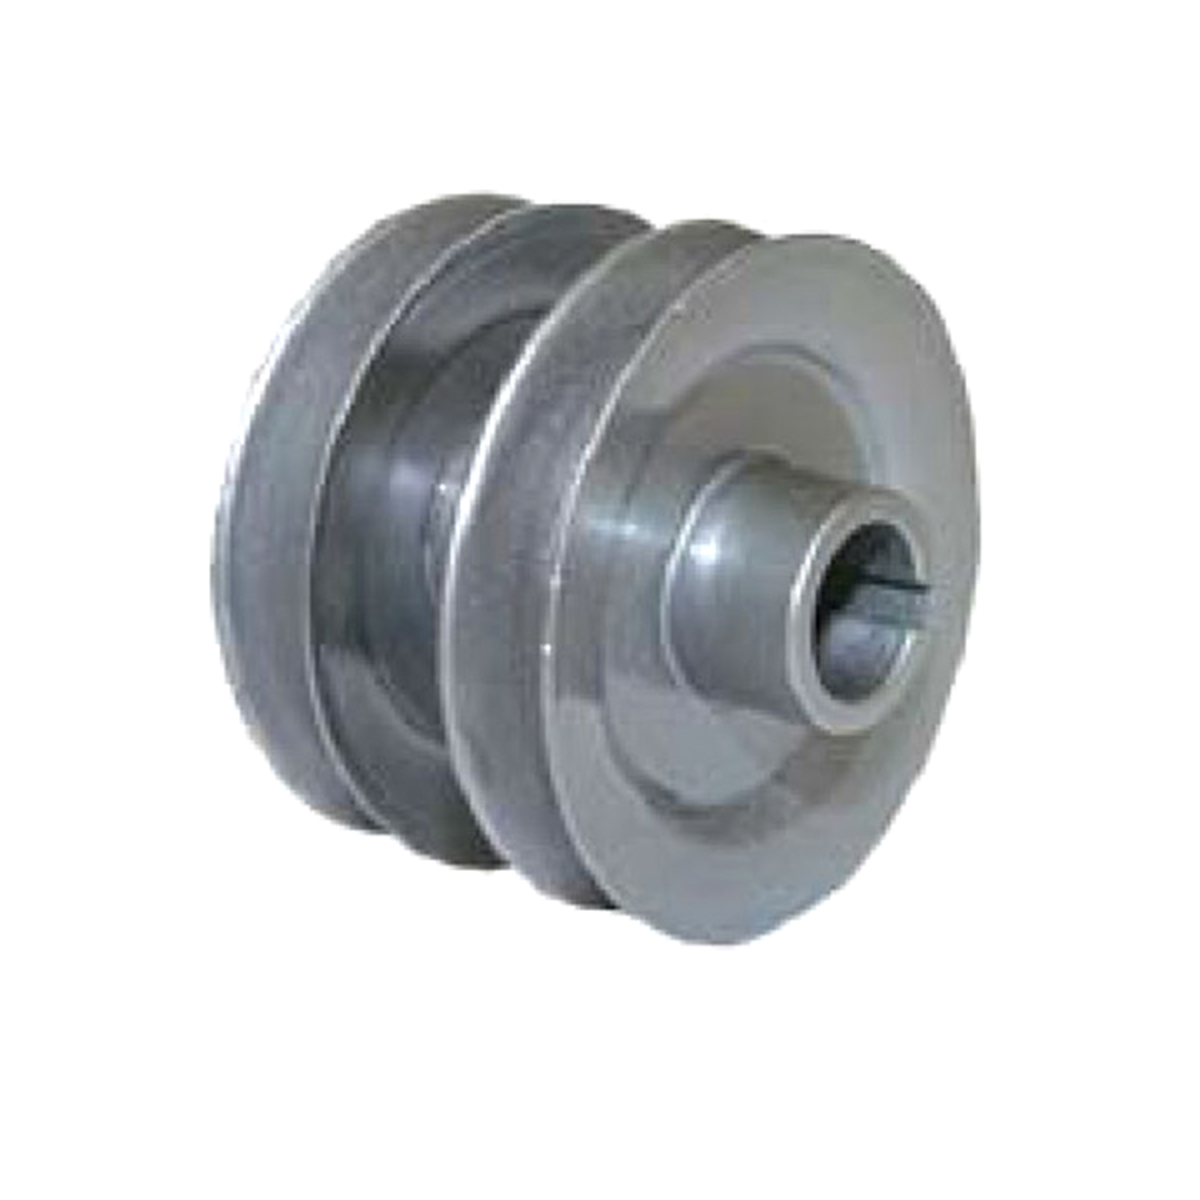 64216 Dixie Chopper 2-Groove Eng. Pulley 4